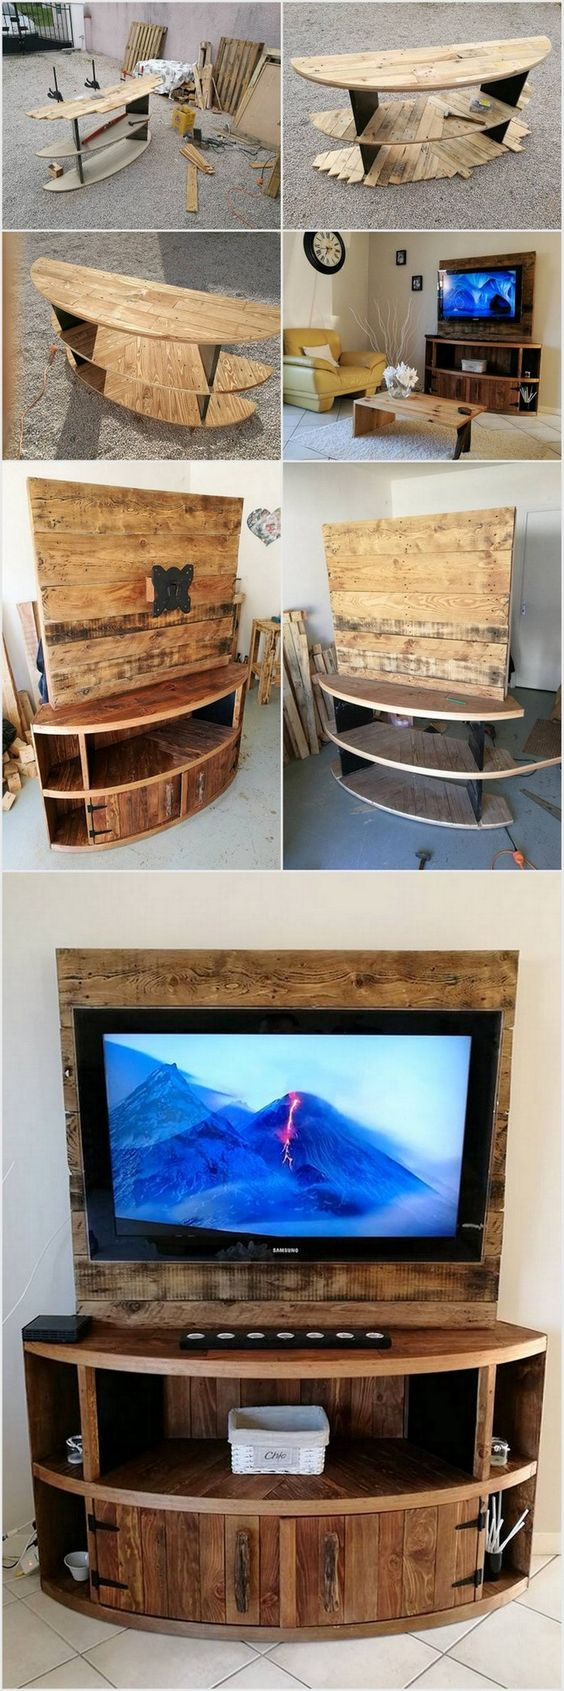 22 Diy Tv Stand Ideas To Unlock Your Creativity